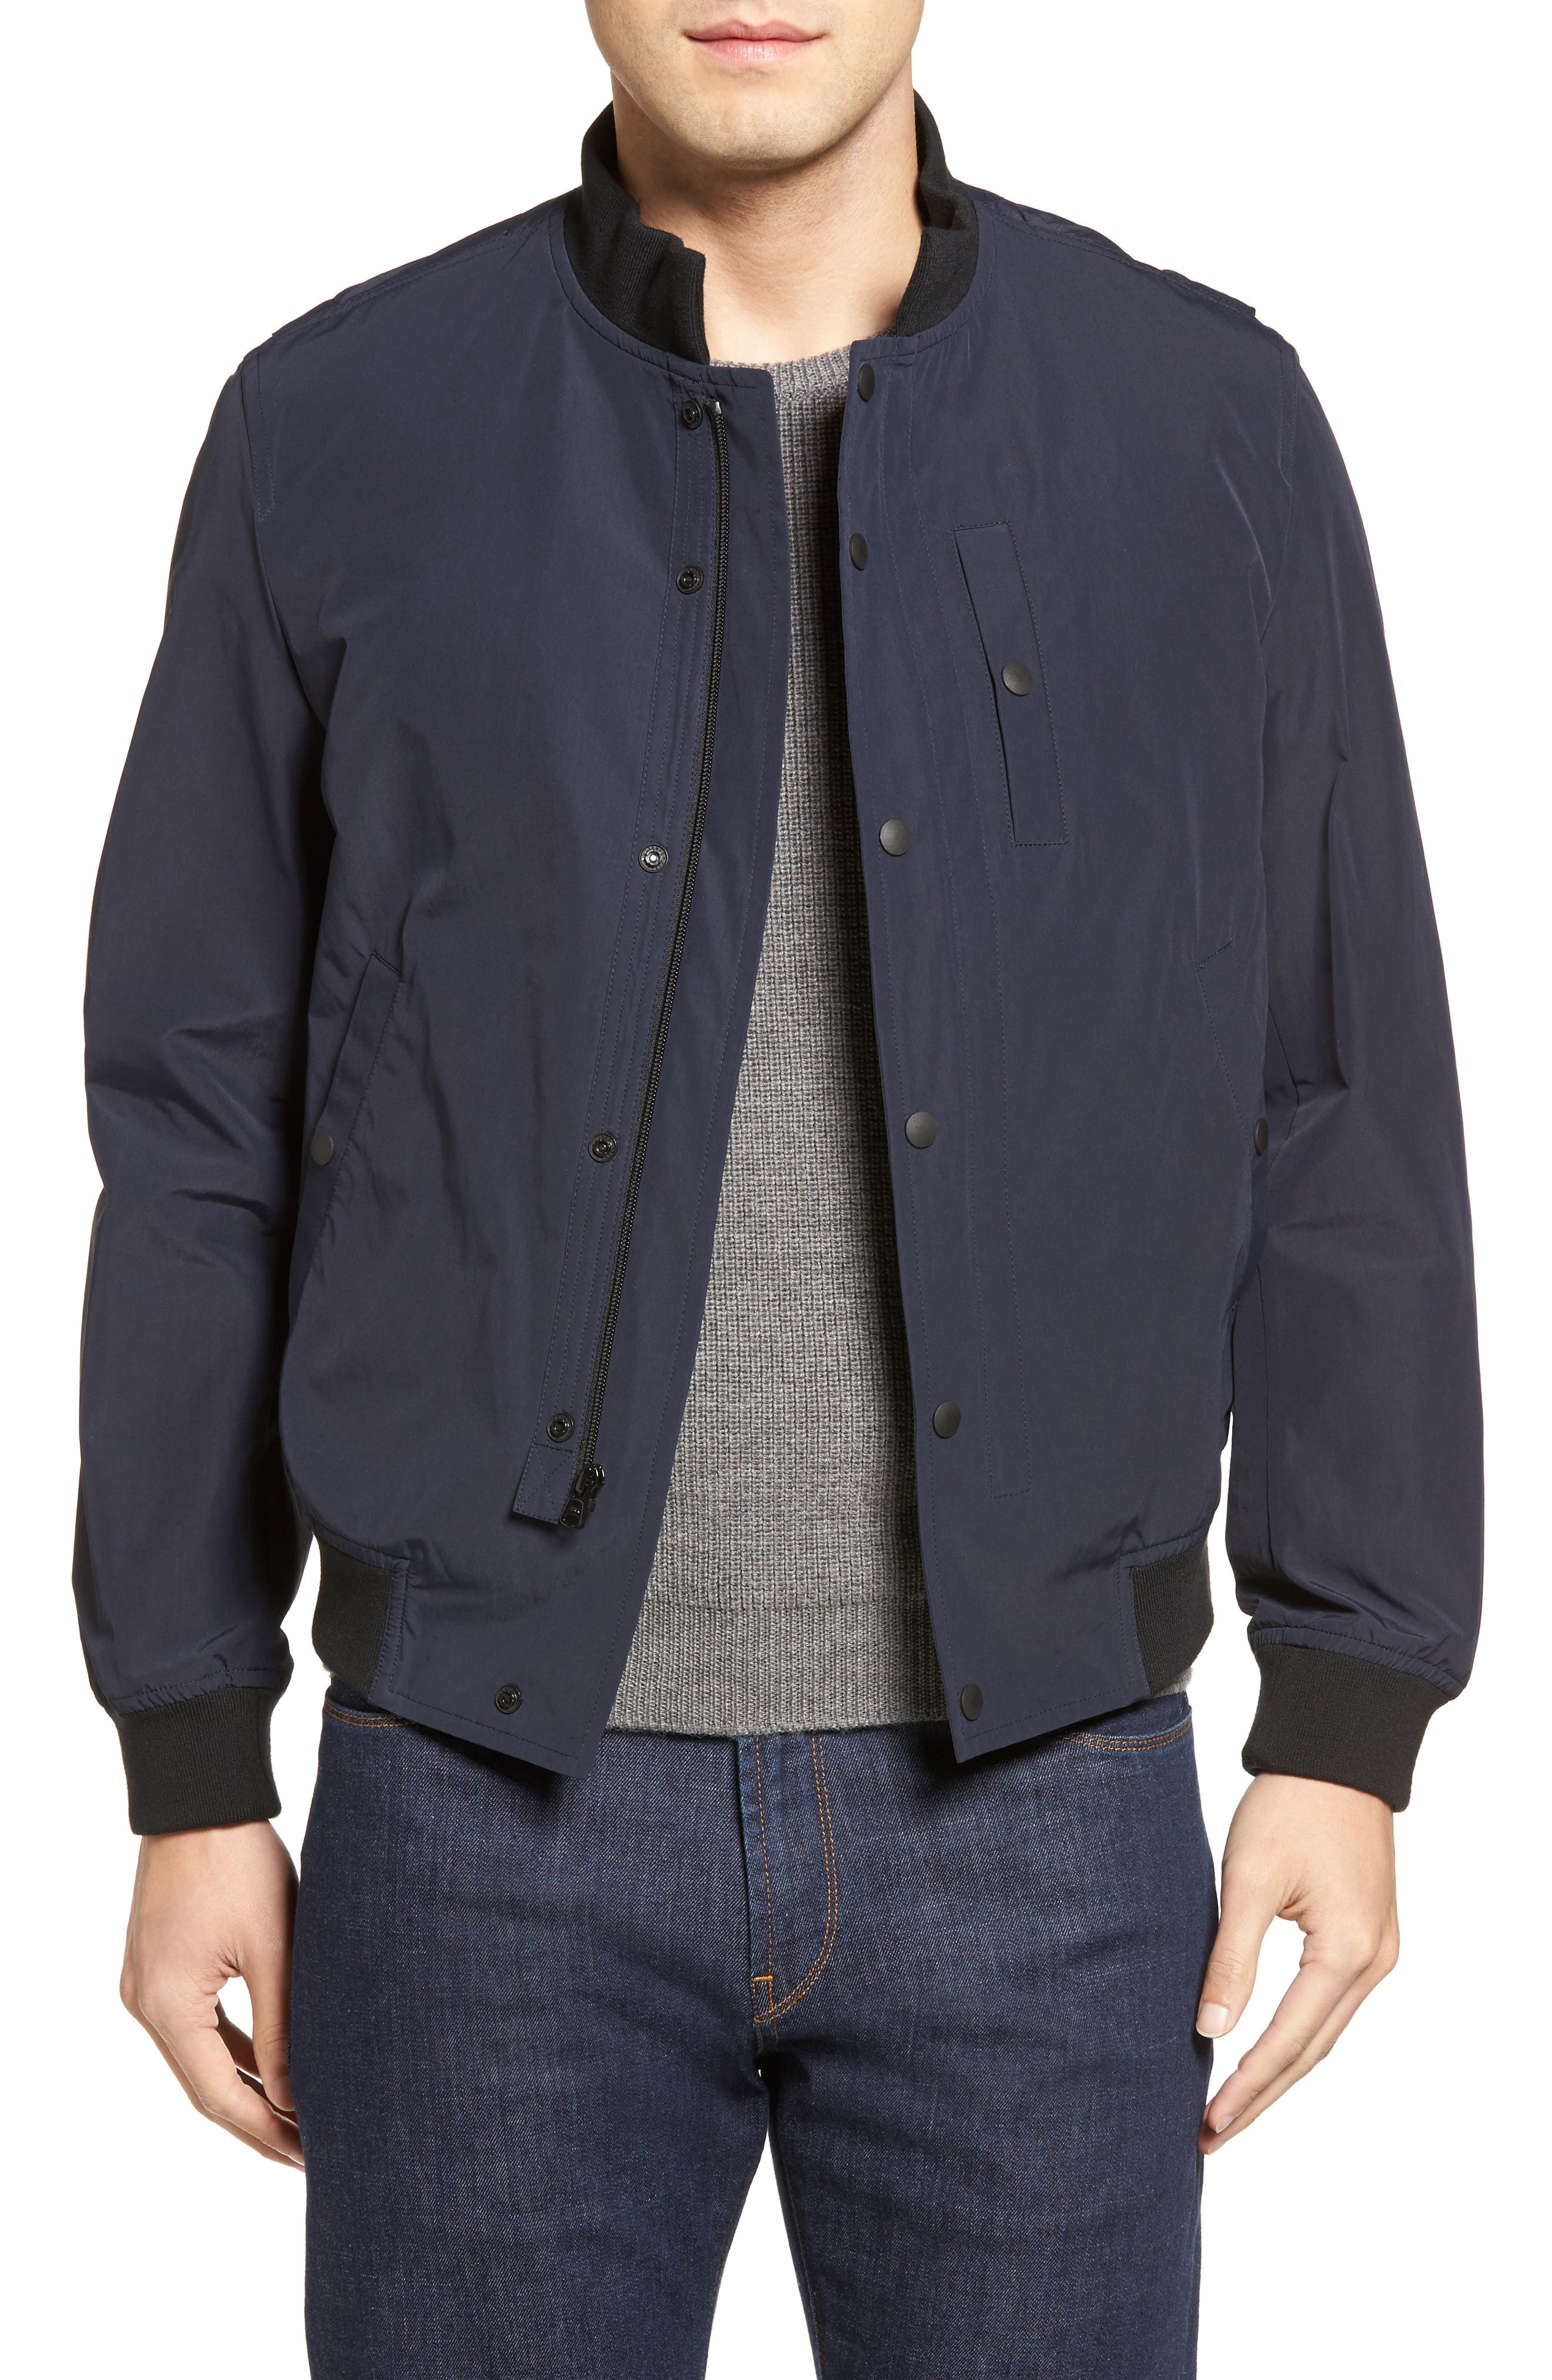 Water Repellent Jacket,                         Main,                         color, Midnight